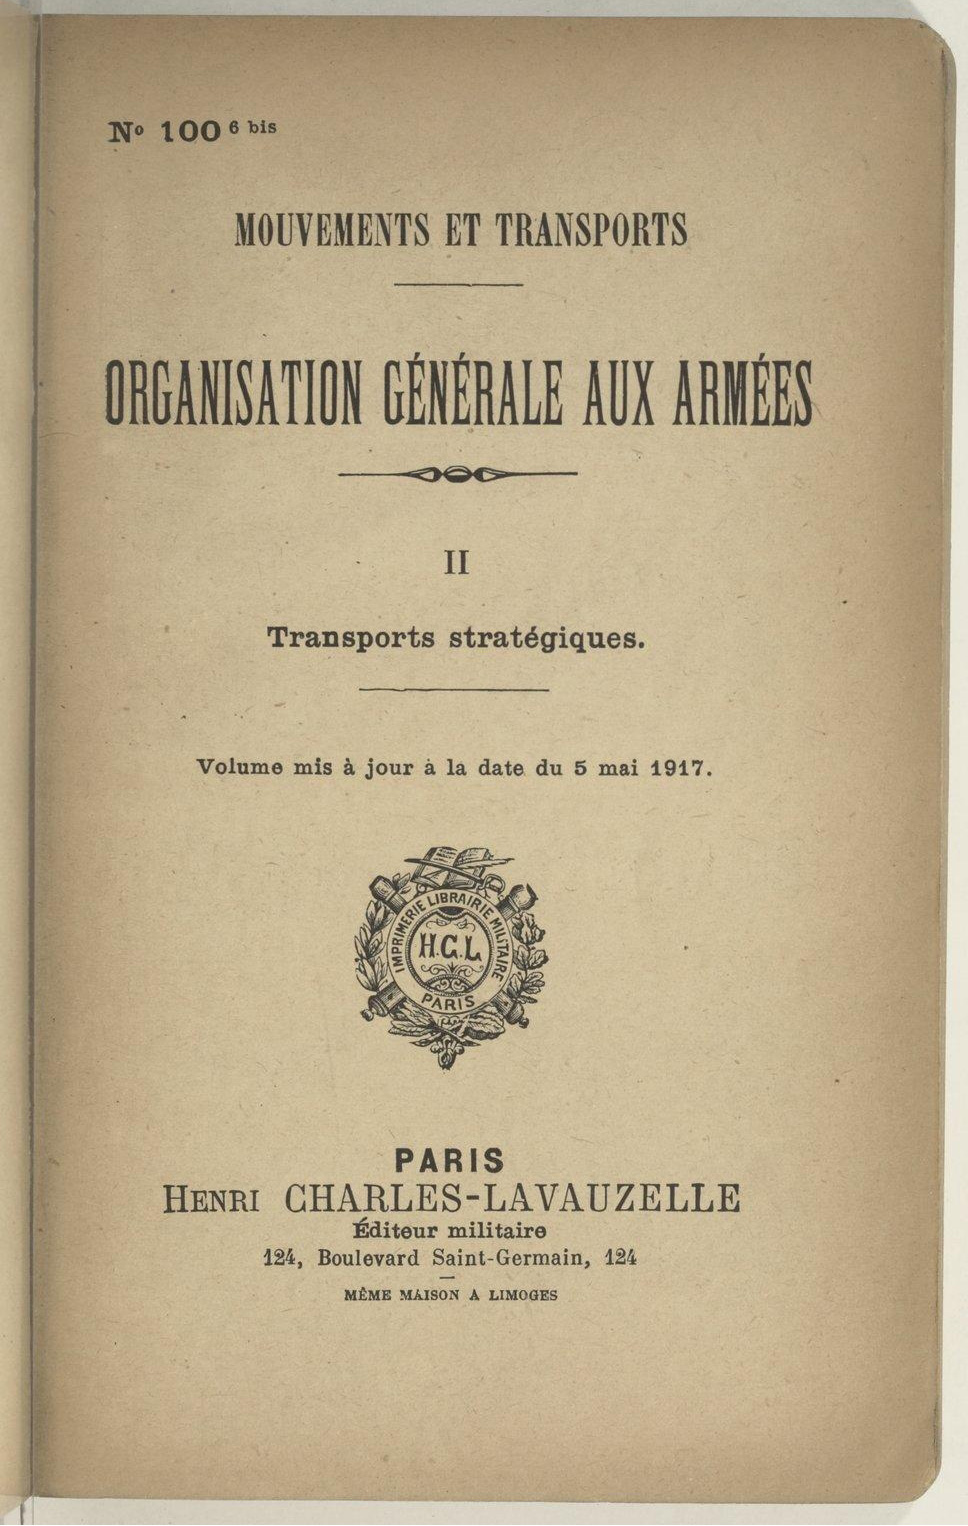 General organisation of the armies. Strategic transport